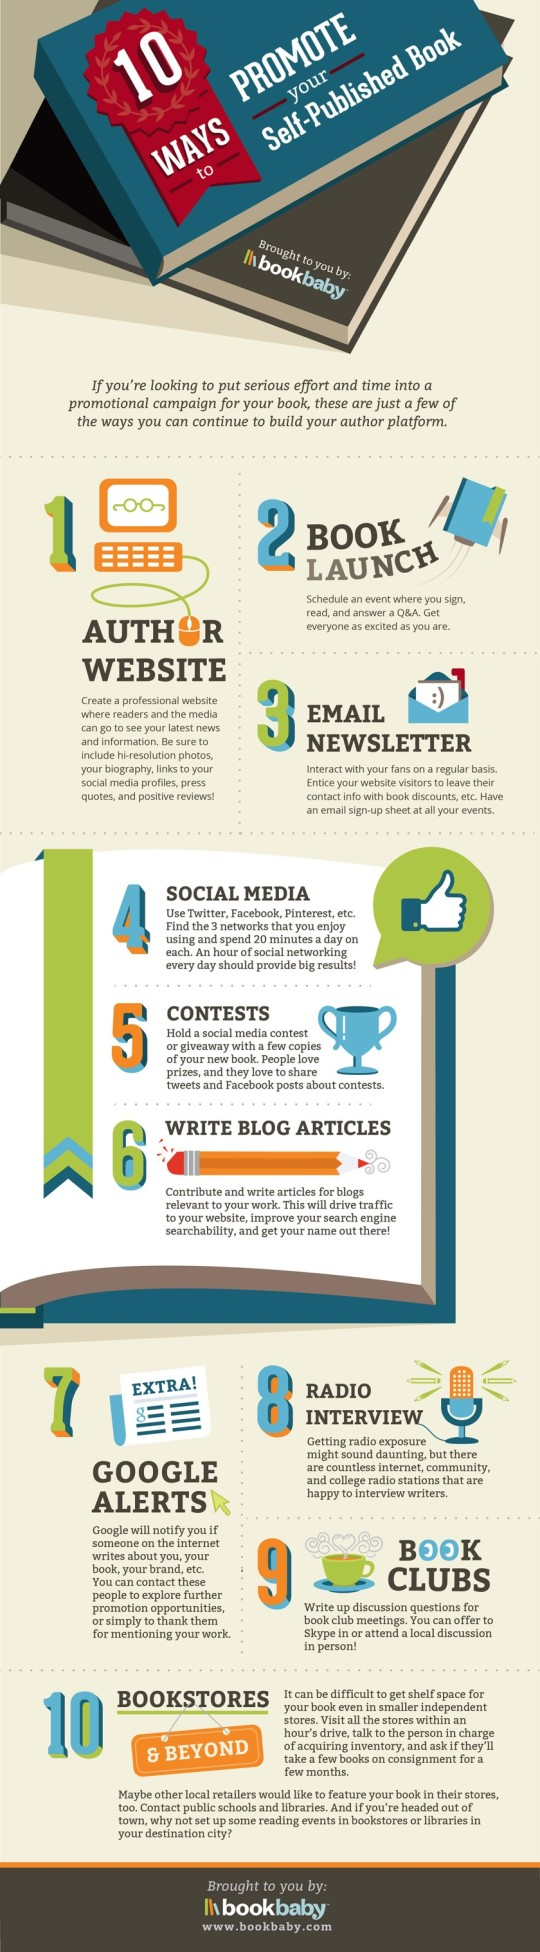 10 ways to promote a self-published book #infographic